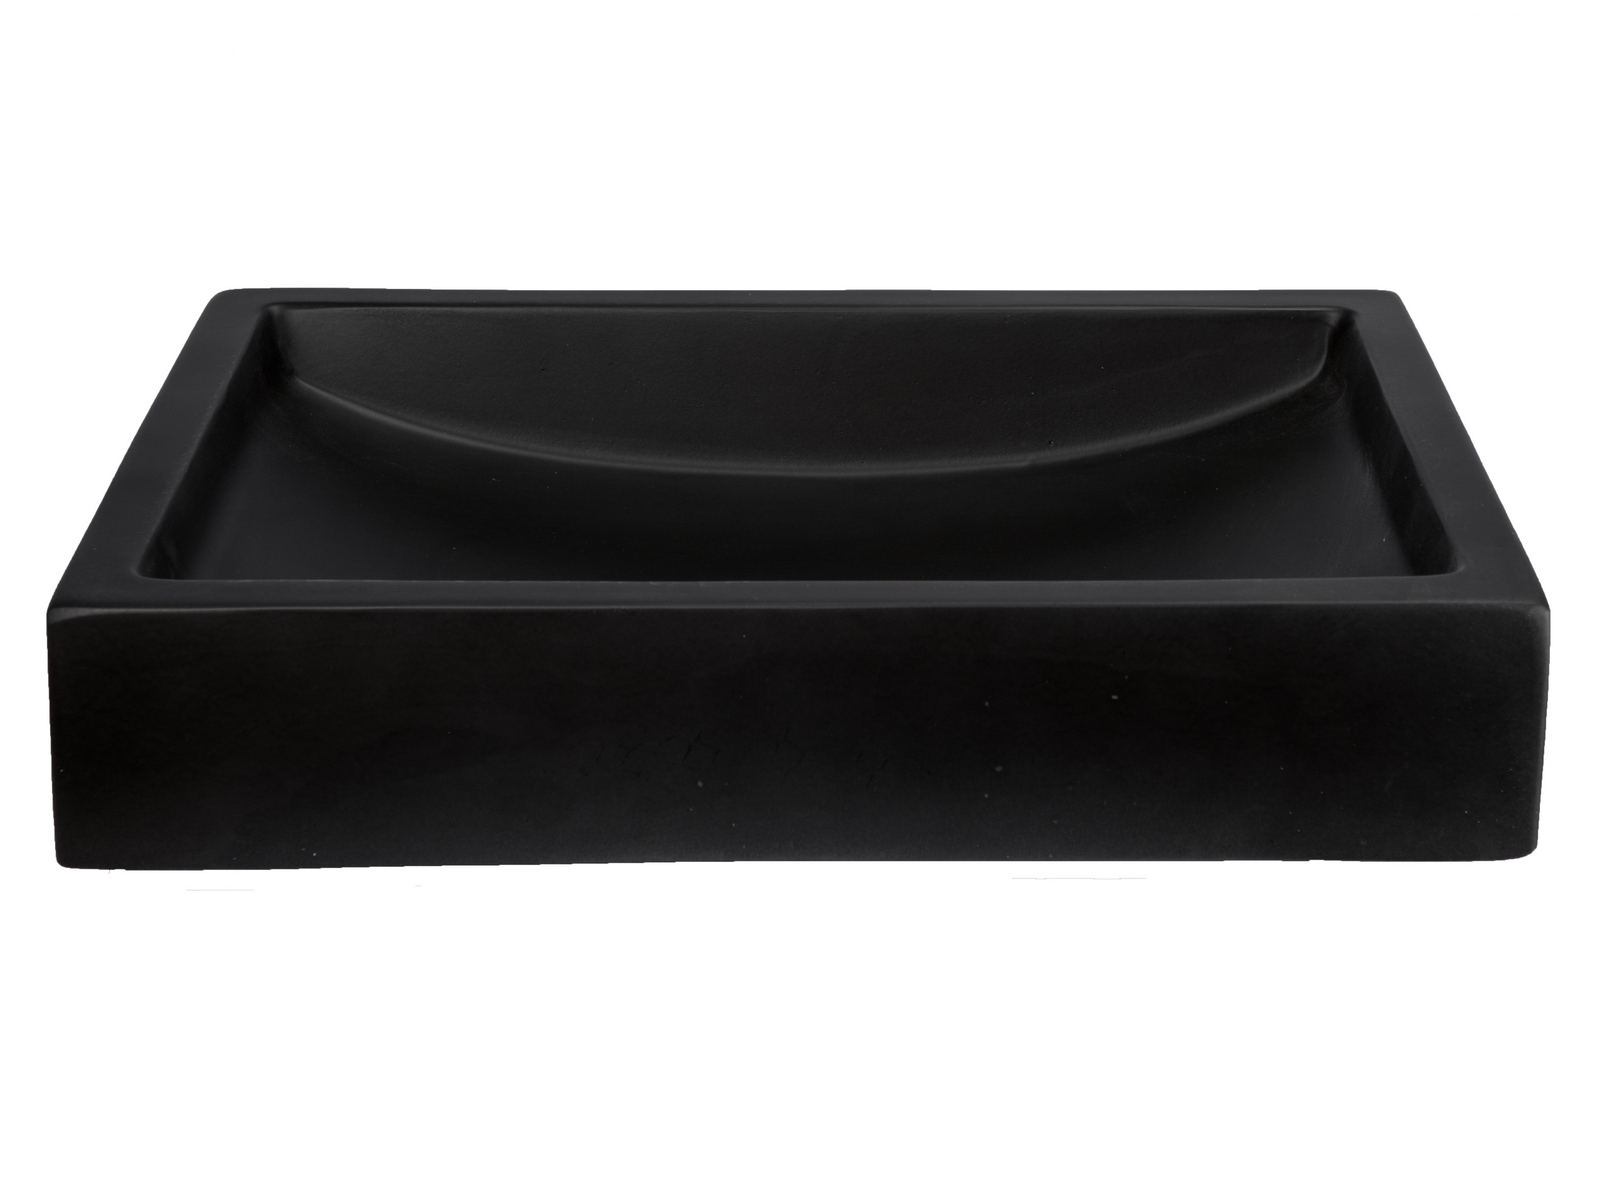 Concrete Vessel Sinks | Natural Vessel Sinks-22-in. Shallow Wave Concrete Rectangular Vessel Sink - Charcoal